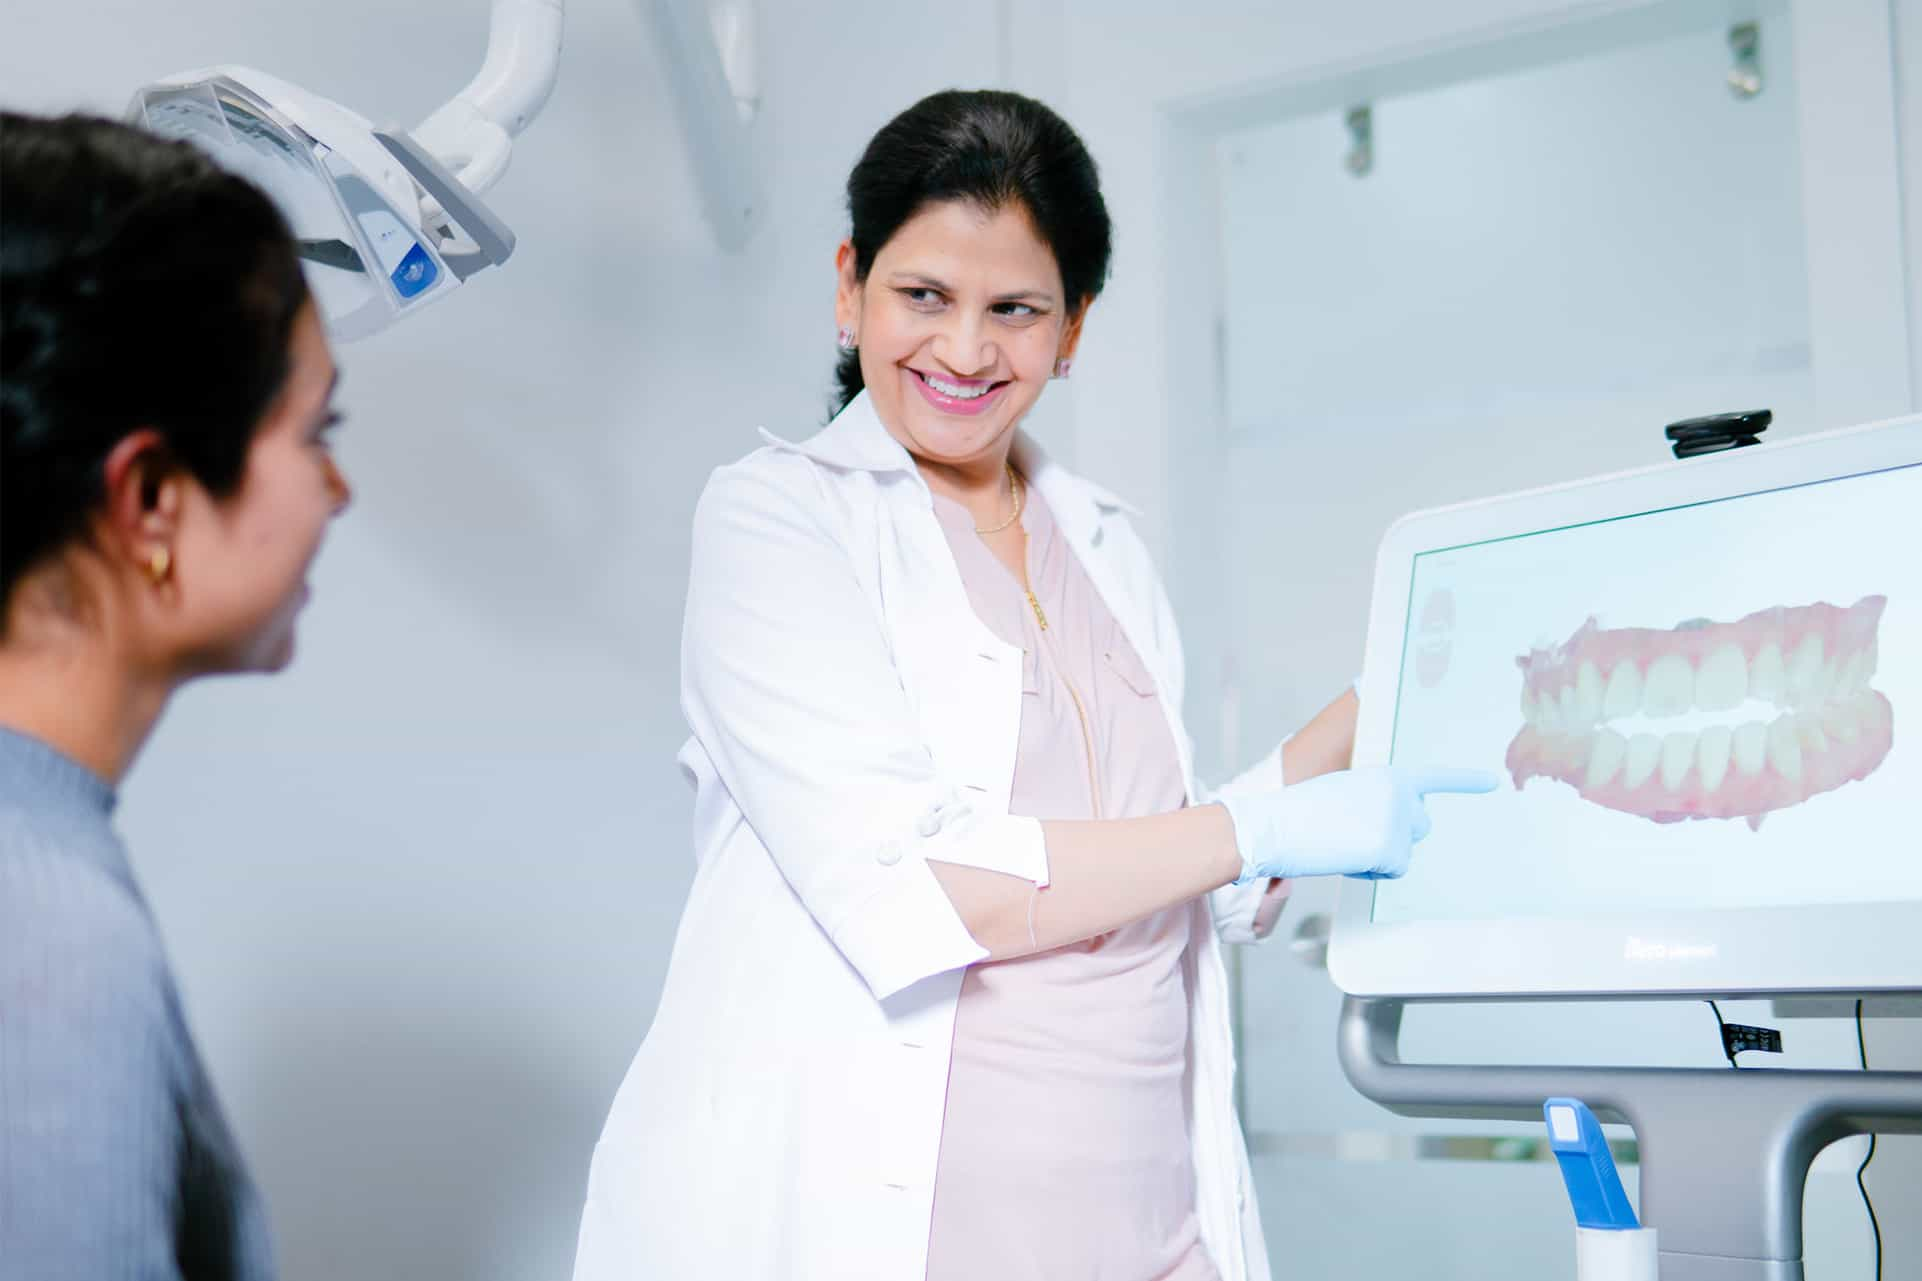 dental implants cost and consultation by dr savita